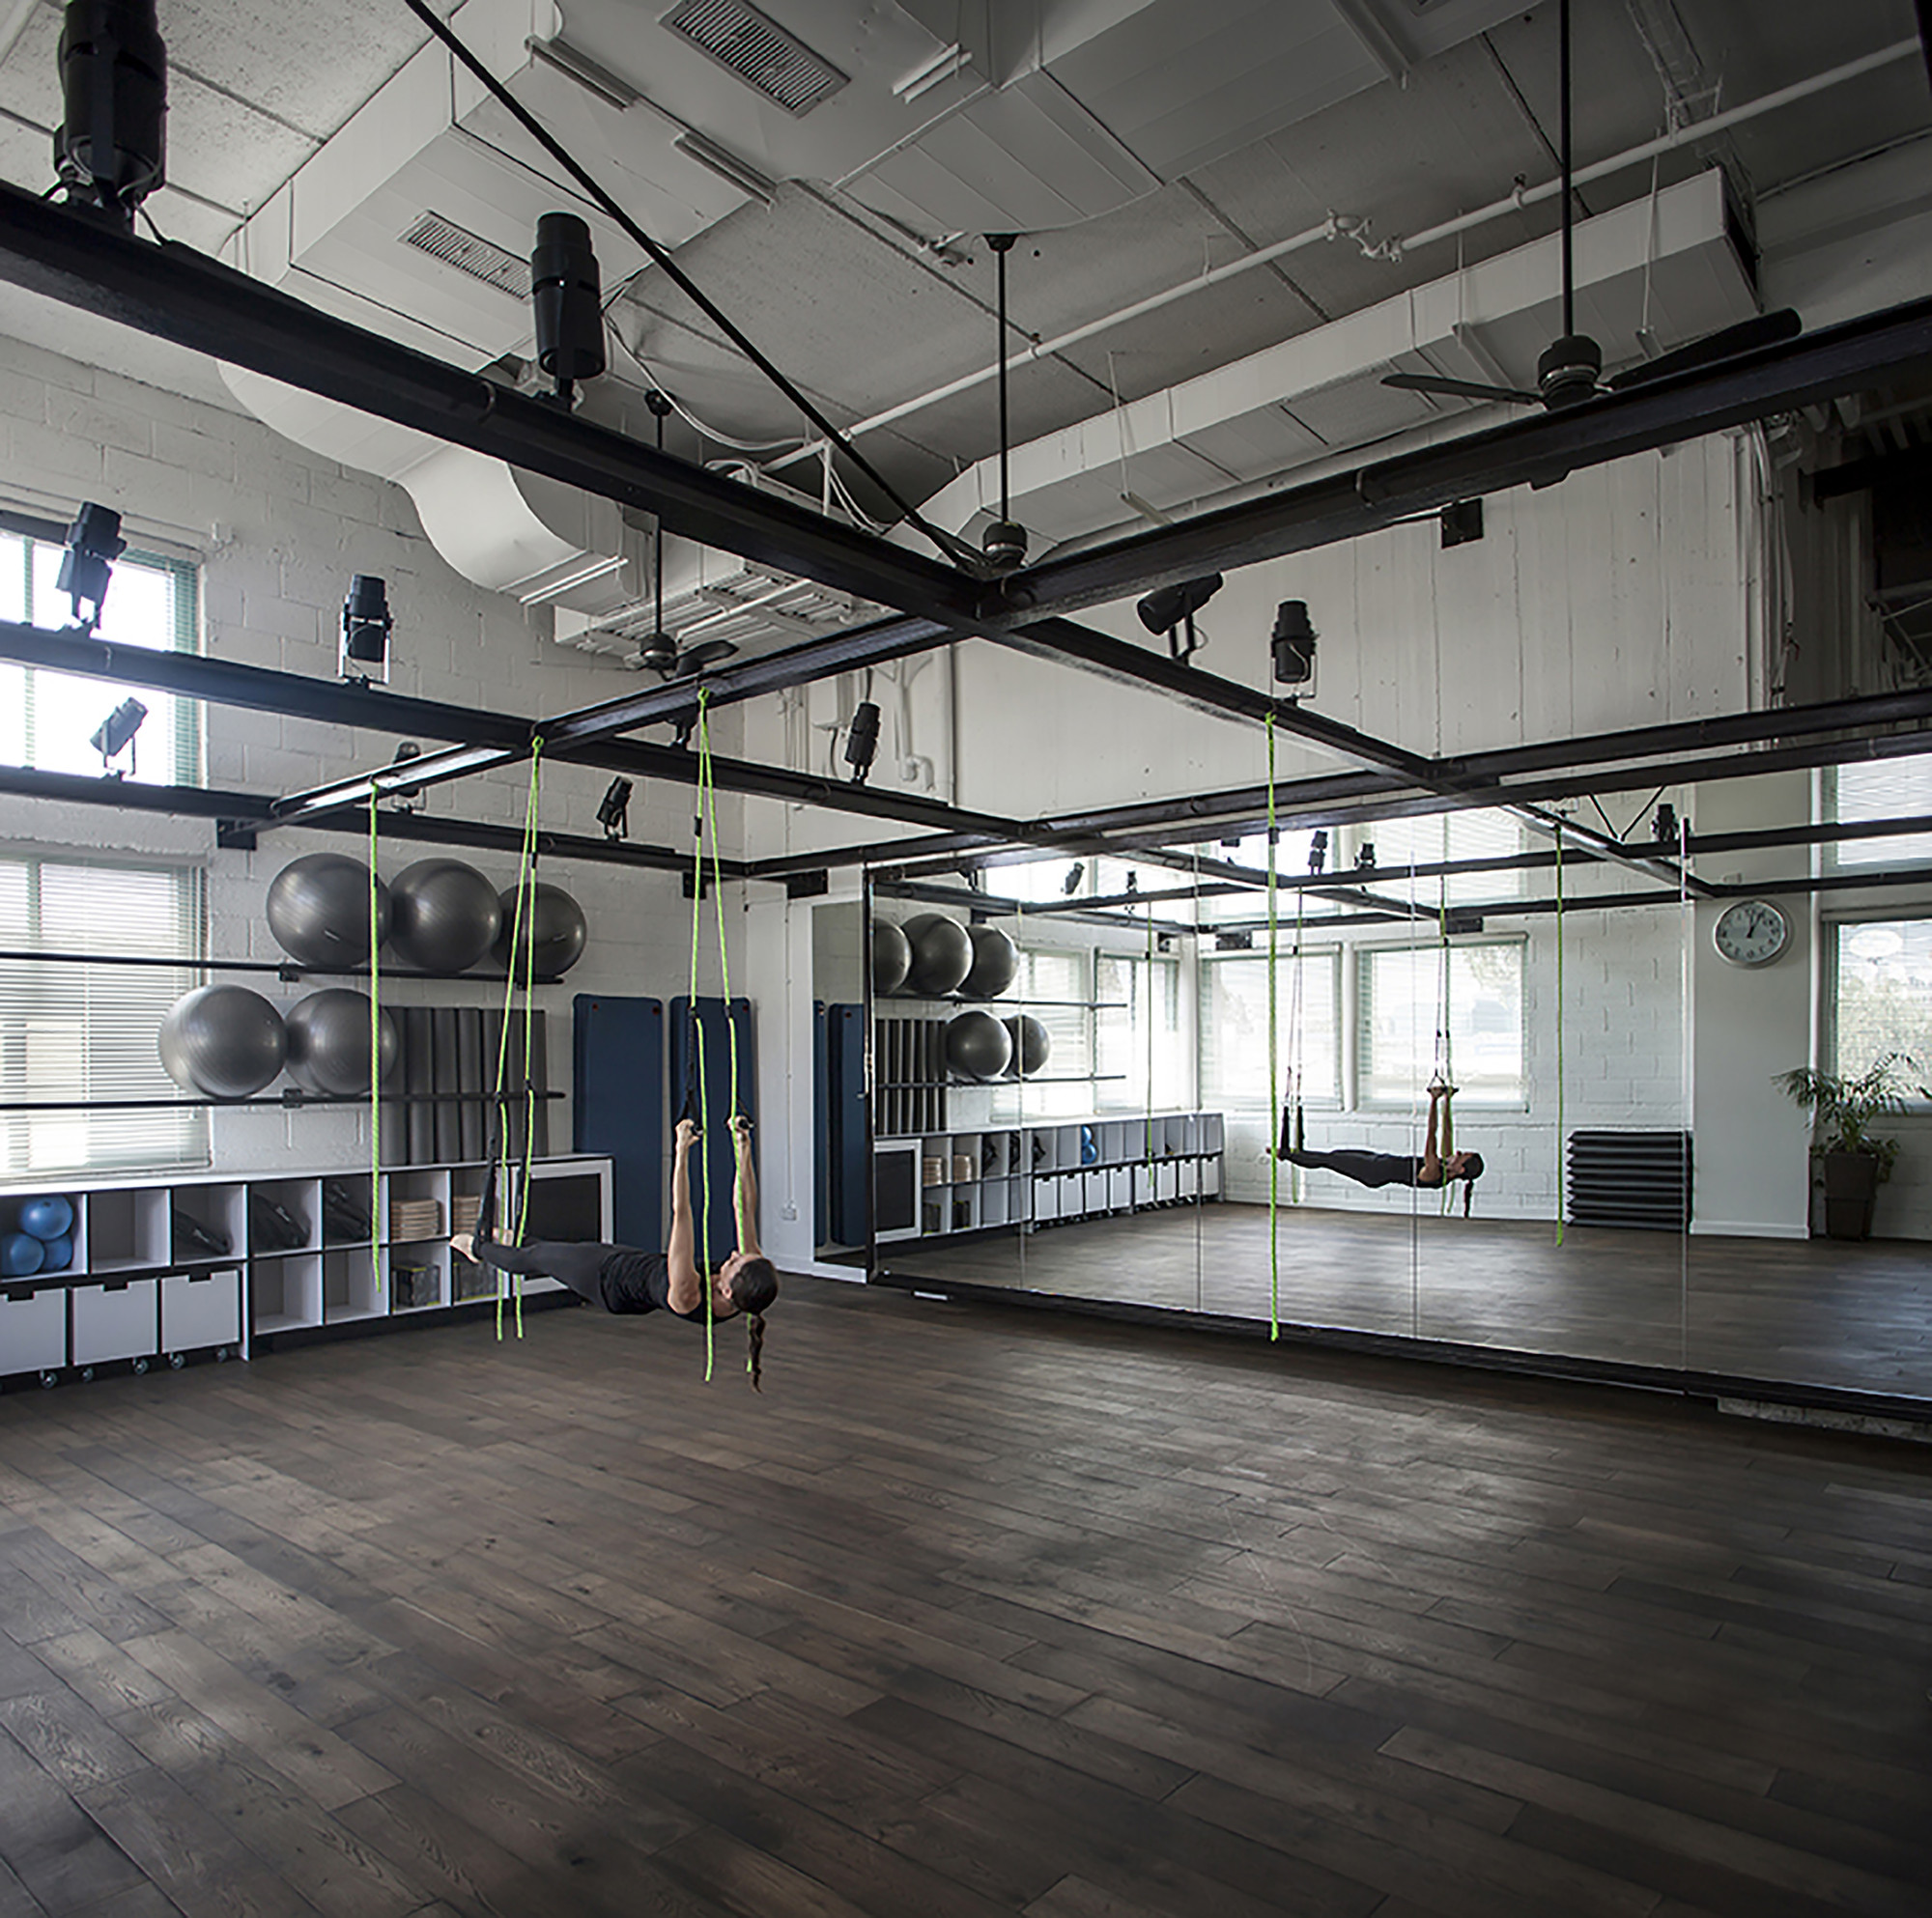 POWERHOUSE - KL Pilates Studio / Jacobs-Yaniv Architects, © Yoav Gurin